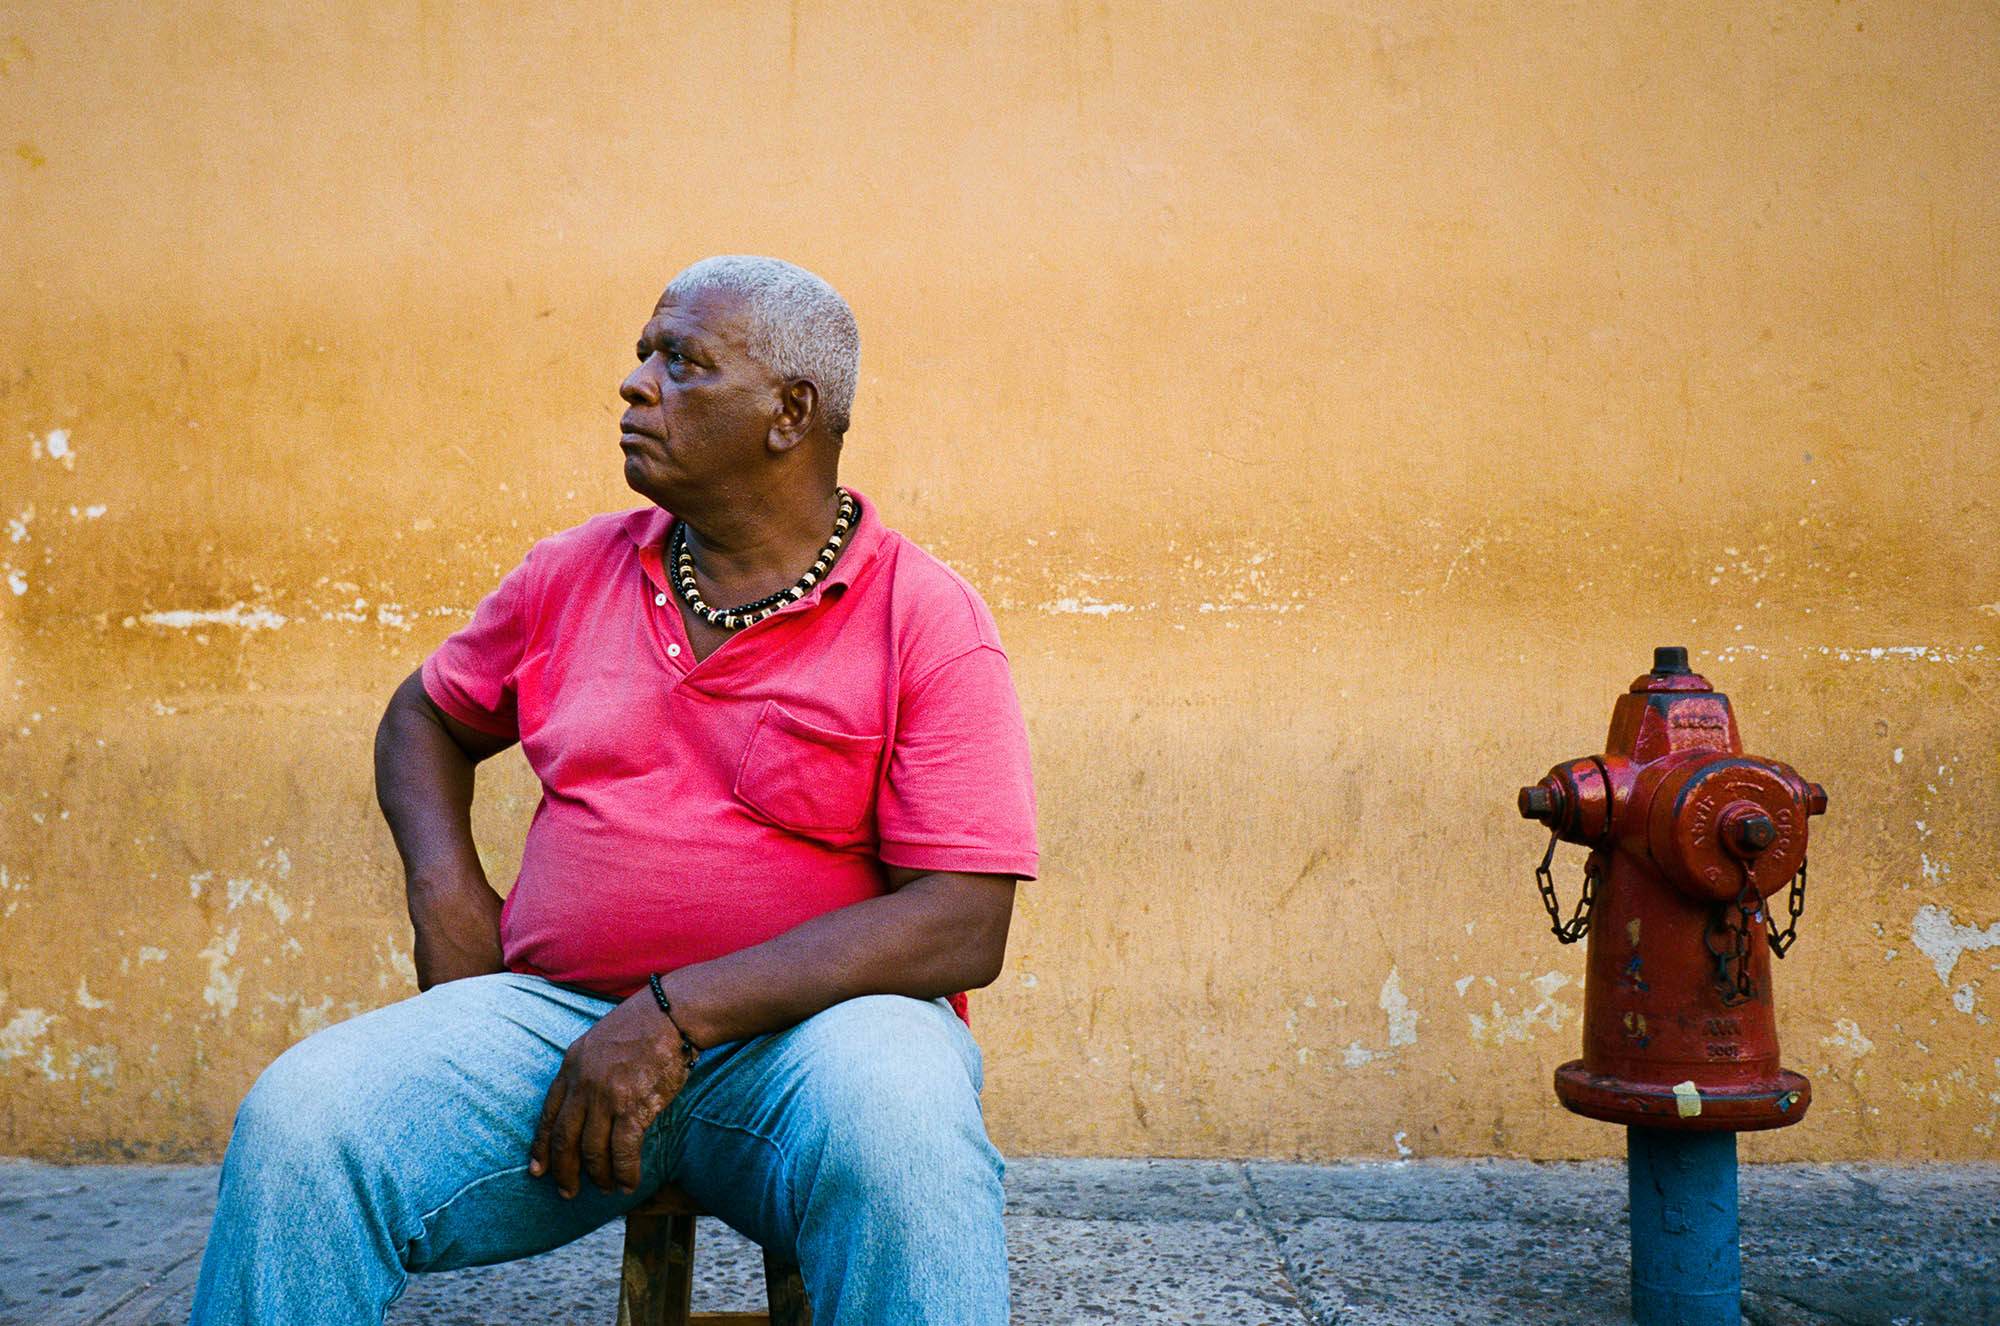 Cartagena Colombia street photography